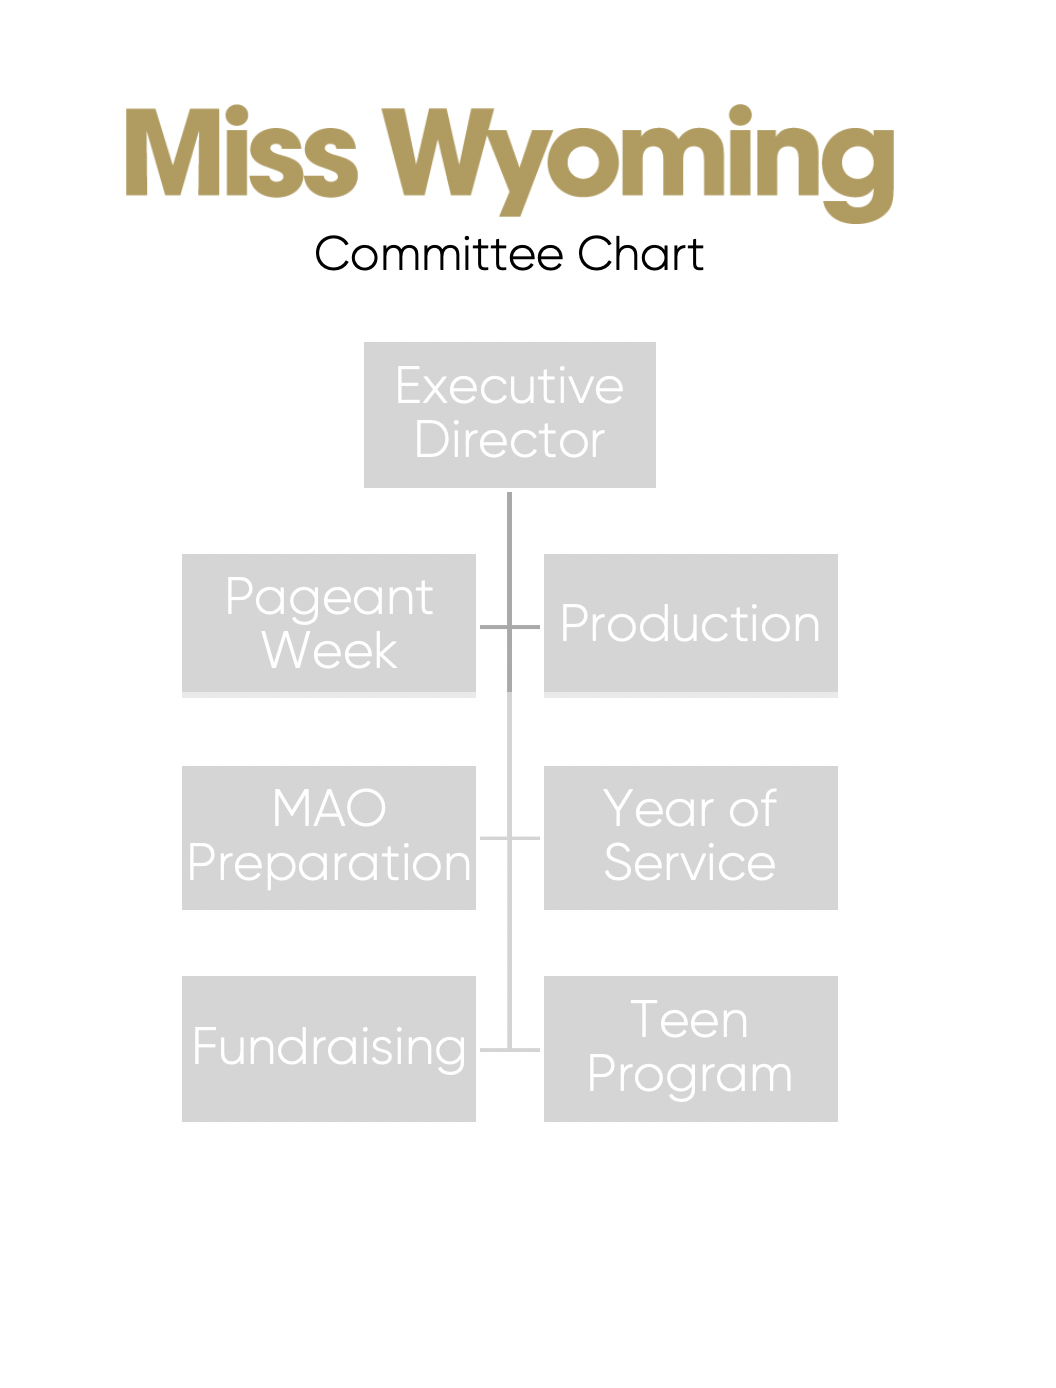 MissWY Committee Chart 2019.png